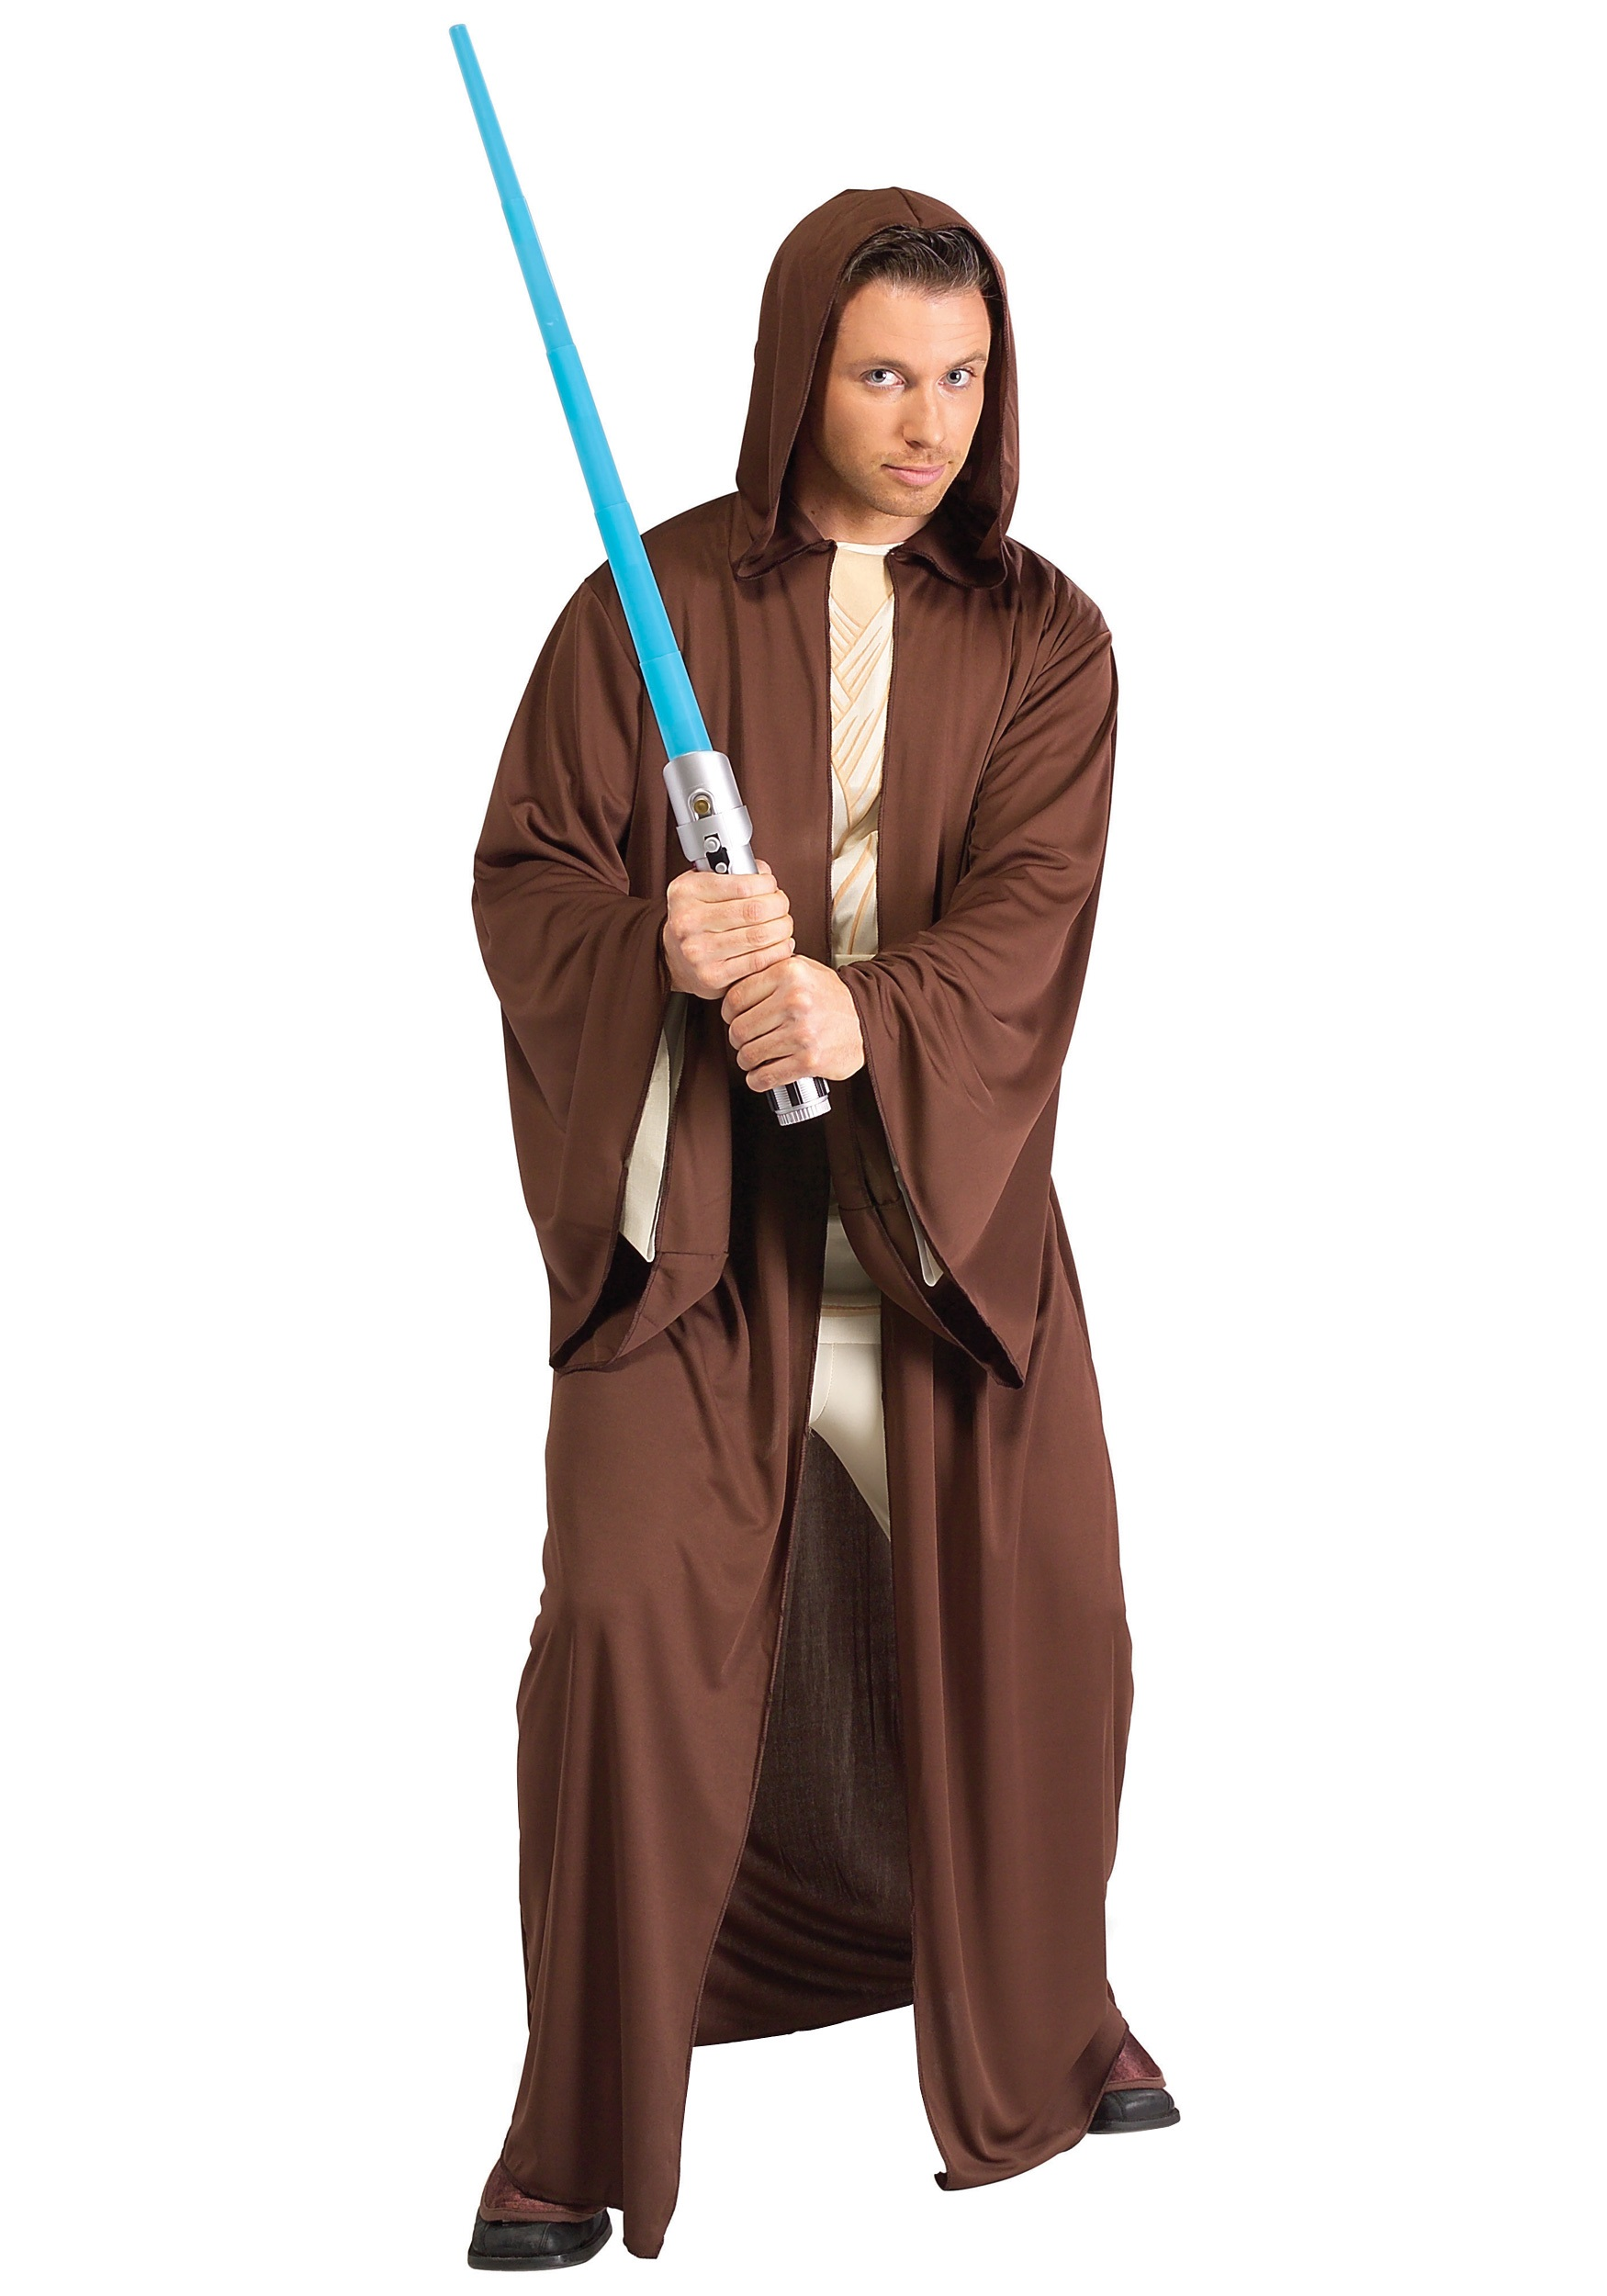 Star Wars Jedi Robe Costume for Adults